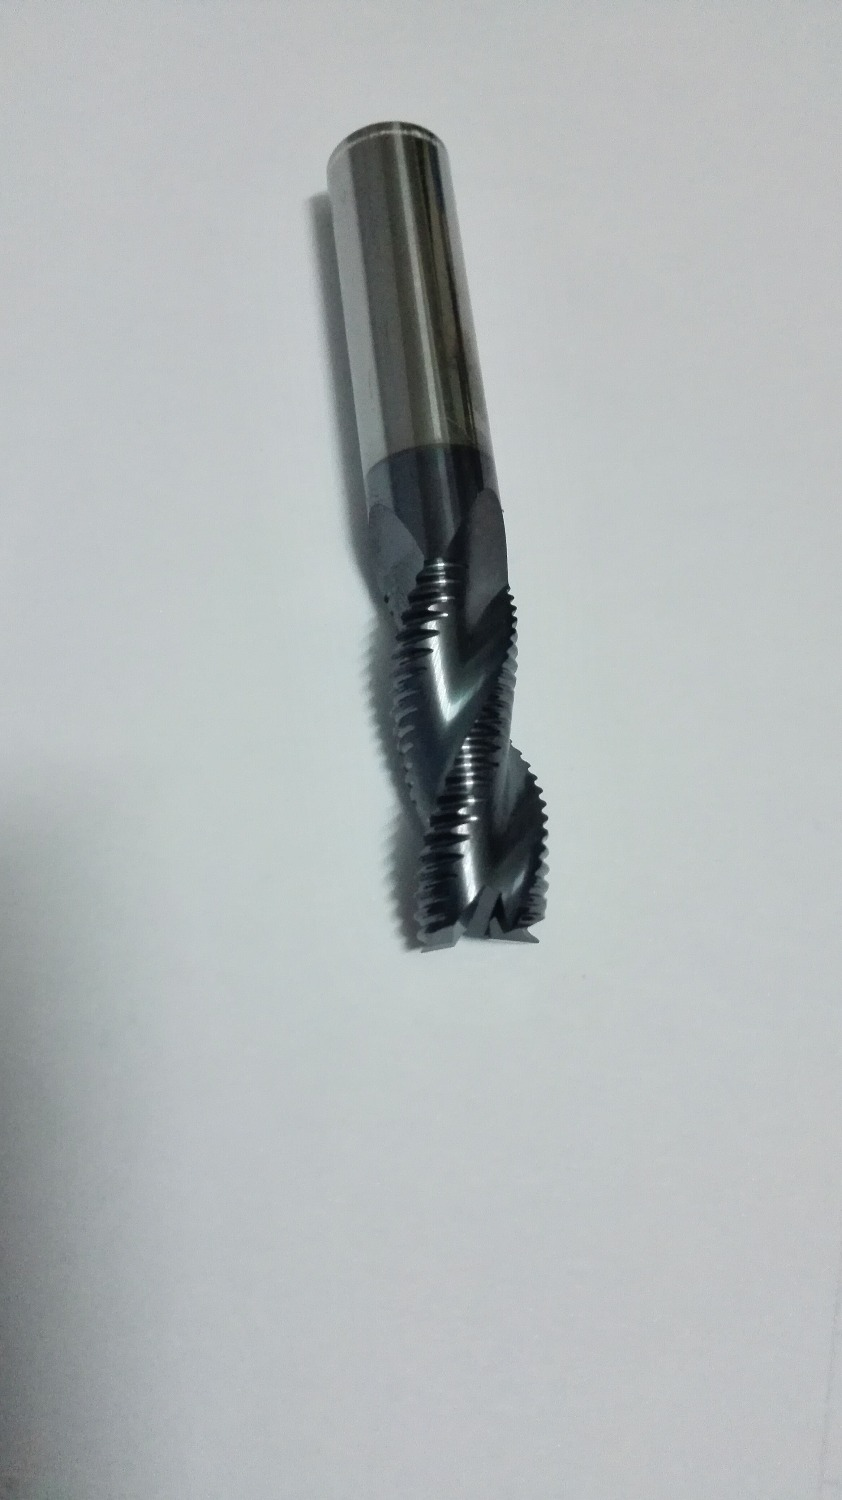 1pc 14mm hrc45 D14*45*D14*135 3Flutes Roughing End Mills Spiral Bit Milling Tools Carbide CNC Endmill Router bits купить недорого в Москве